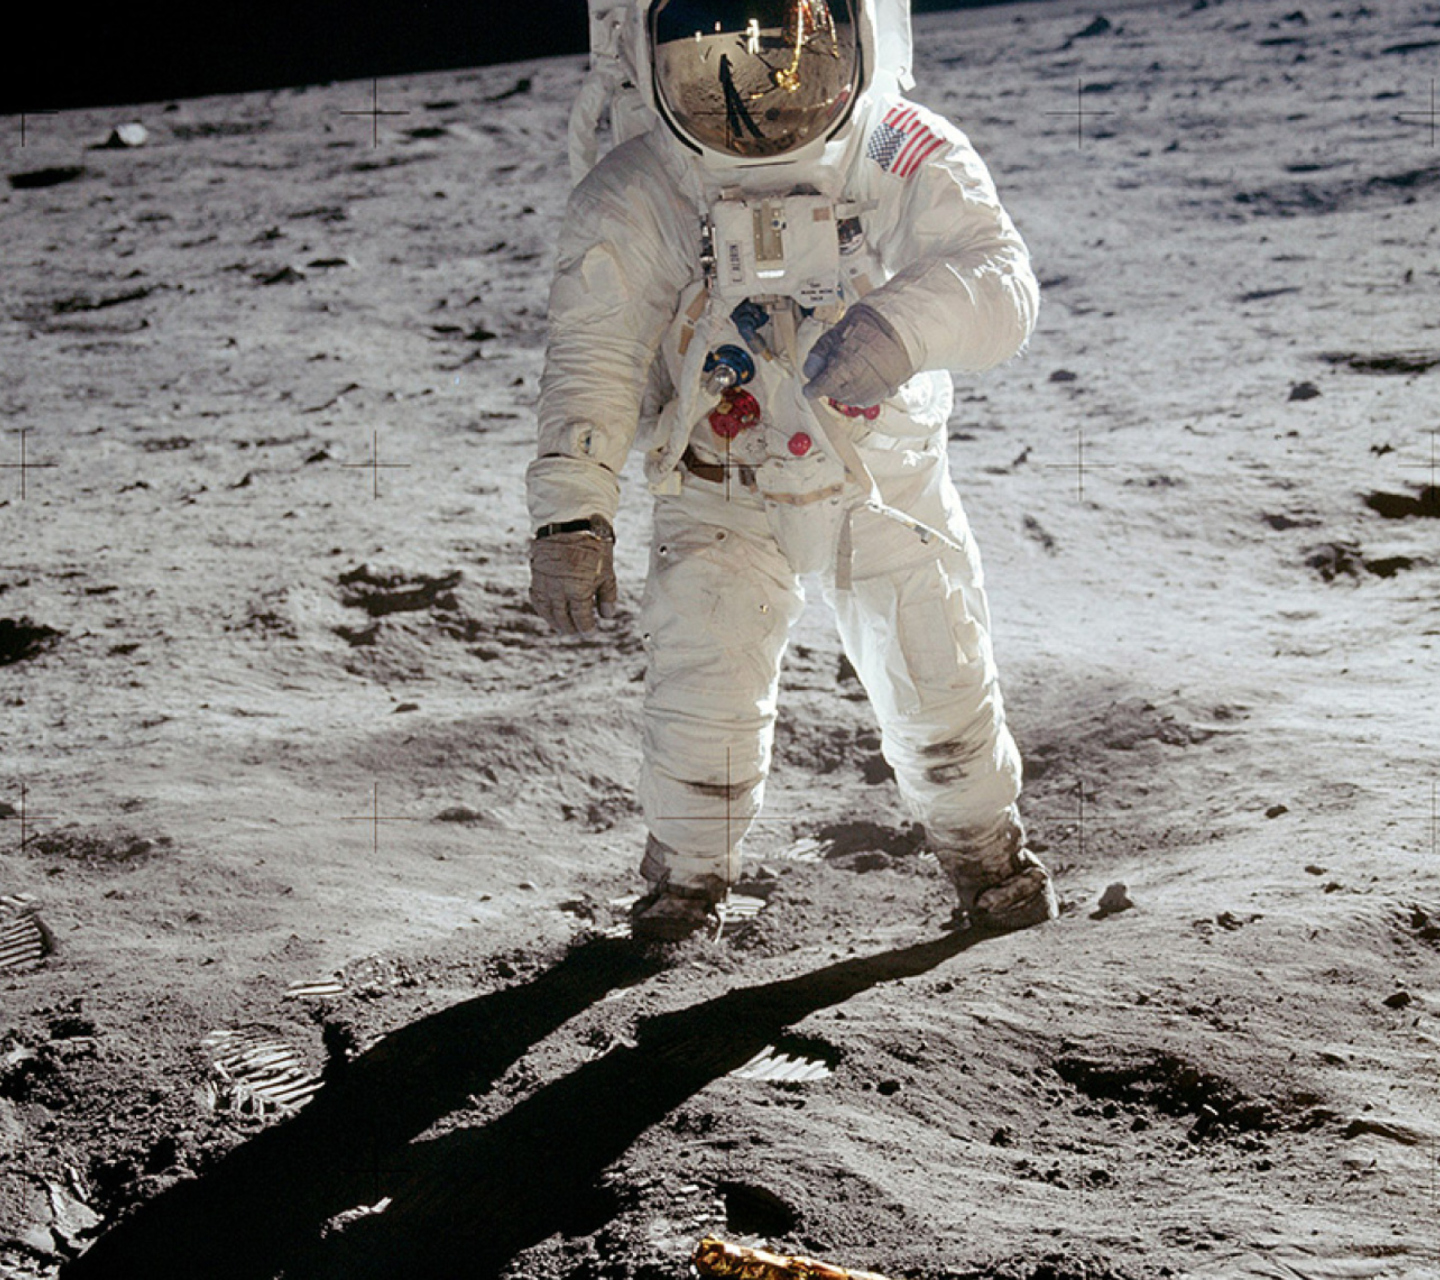 astronaut on the moon pictures - HD 1440×1280